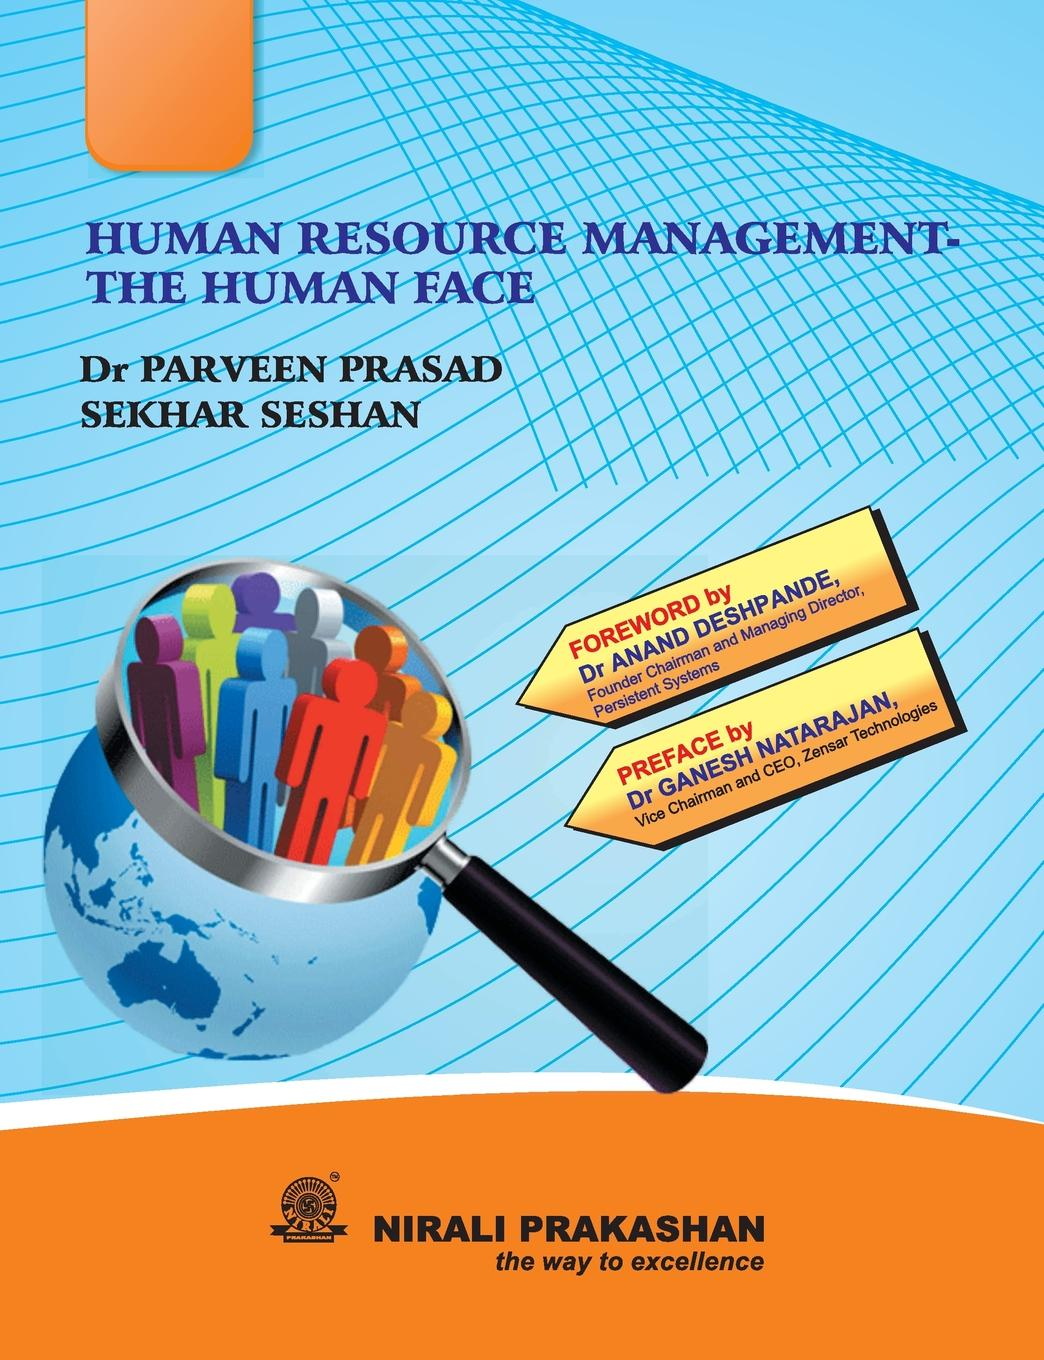 DR PARVEEN PRASAD PRASAD, SEKHAR SESHAN HUMAN RESOURCE MANAGEMENT THE HUMAN FACE prescott robert k encyclopedia of human resource management key topics and issues